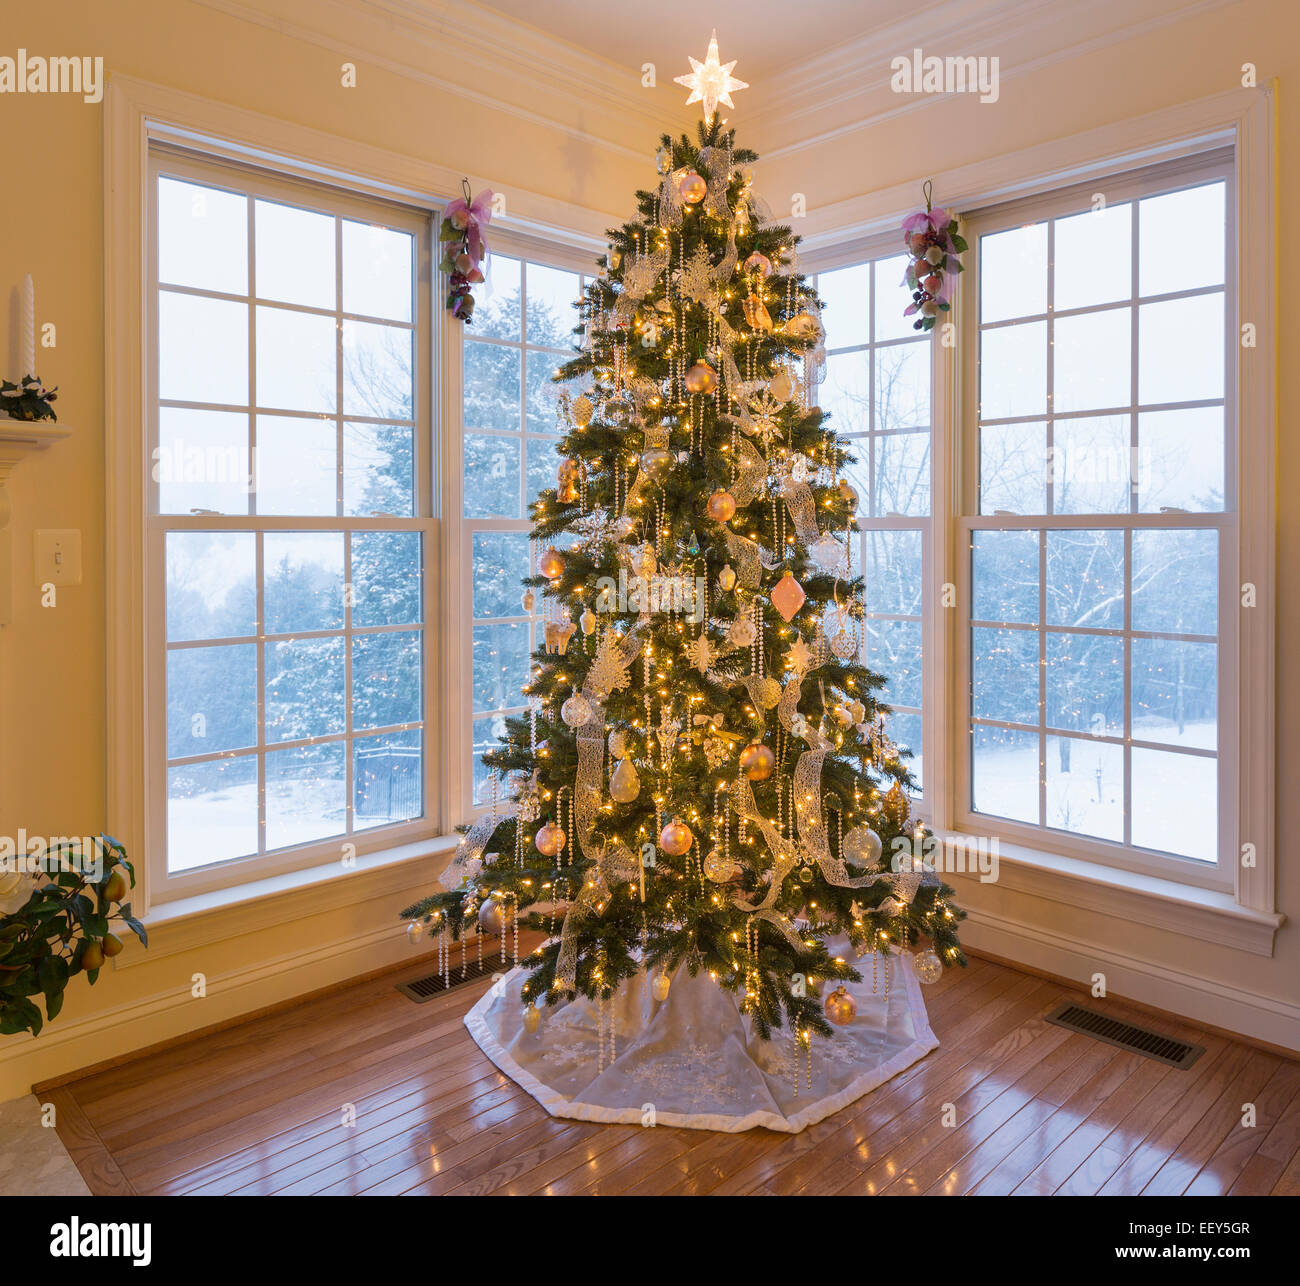 christmas tree in modern home with snow falling outside stock image - How To Decorate A Big Christmas Tree